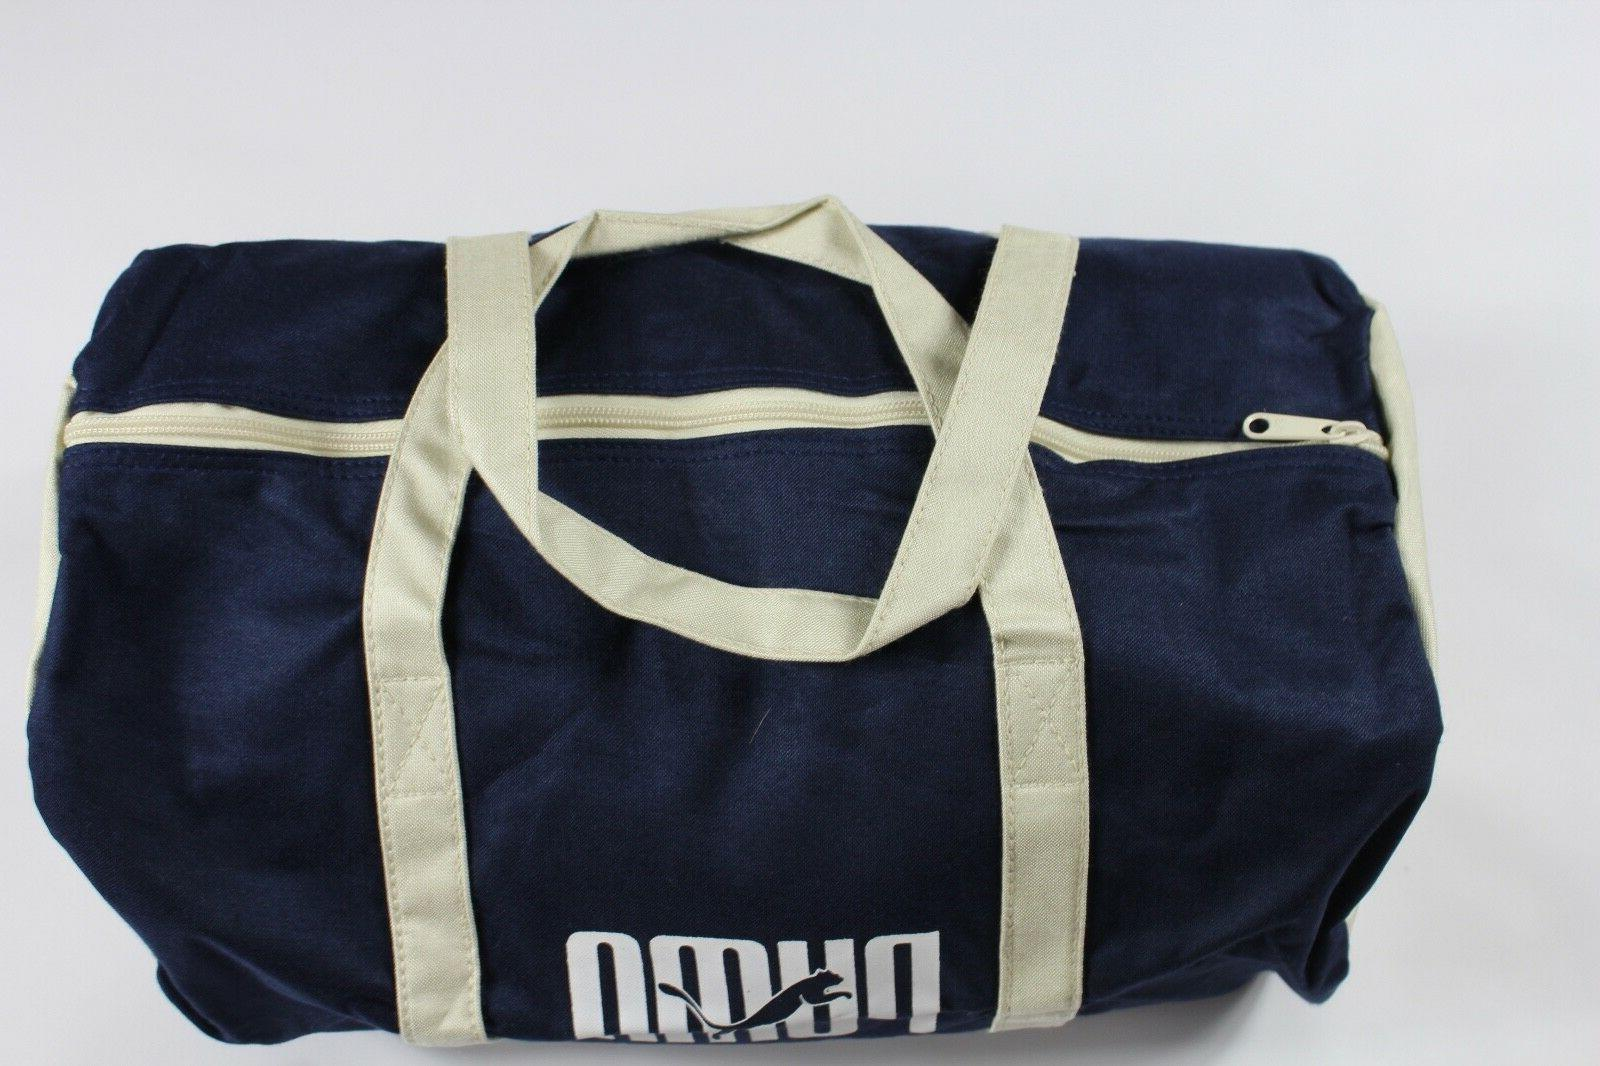 NOS Vintage Spell Handled Duffel Carry On